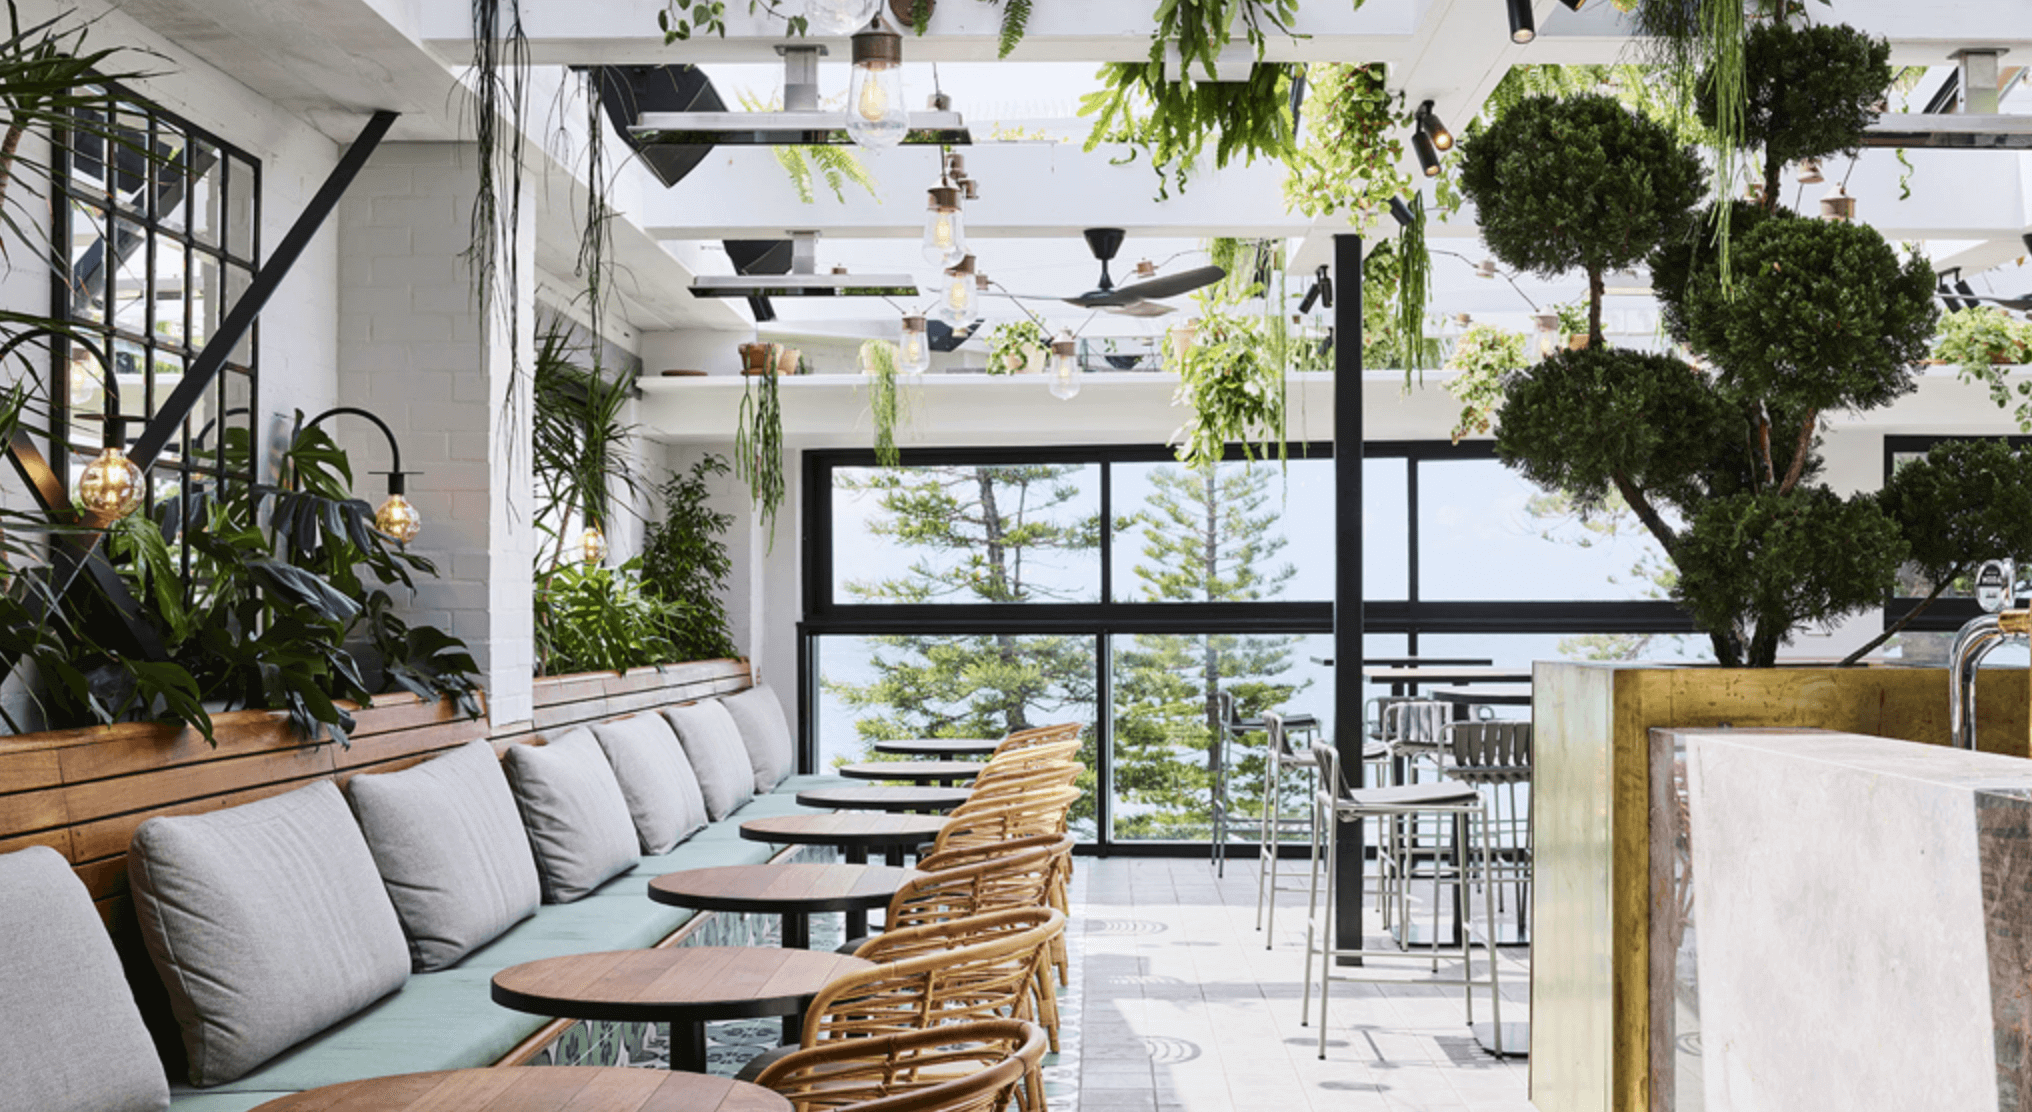 Luchetti Krelle designed the interiors for hot spot Manly Greenhouse, pictured above.